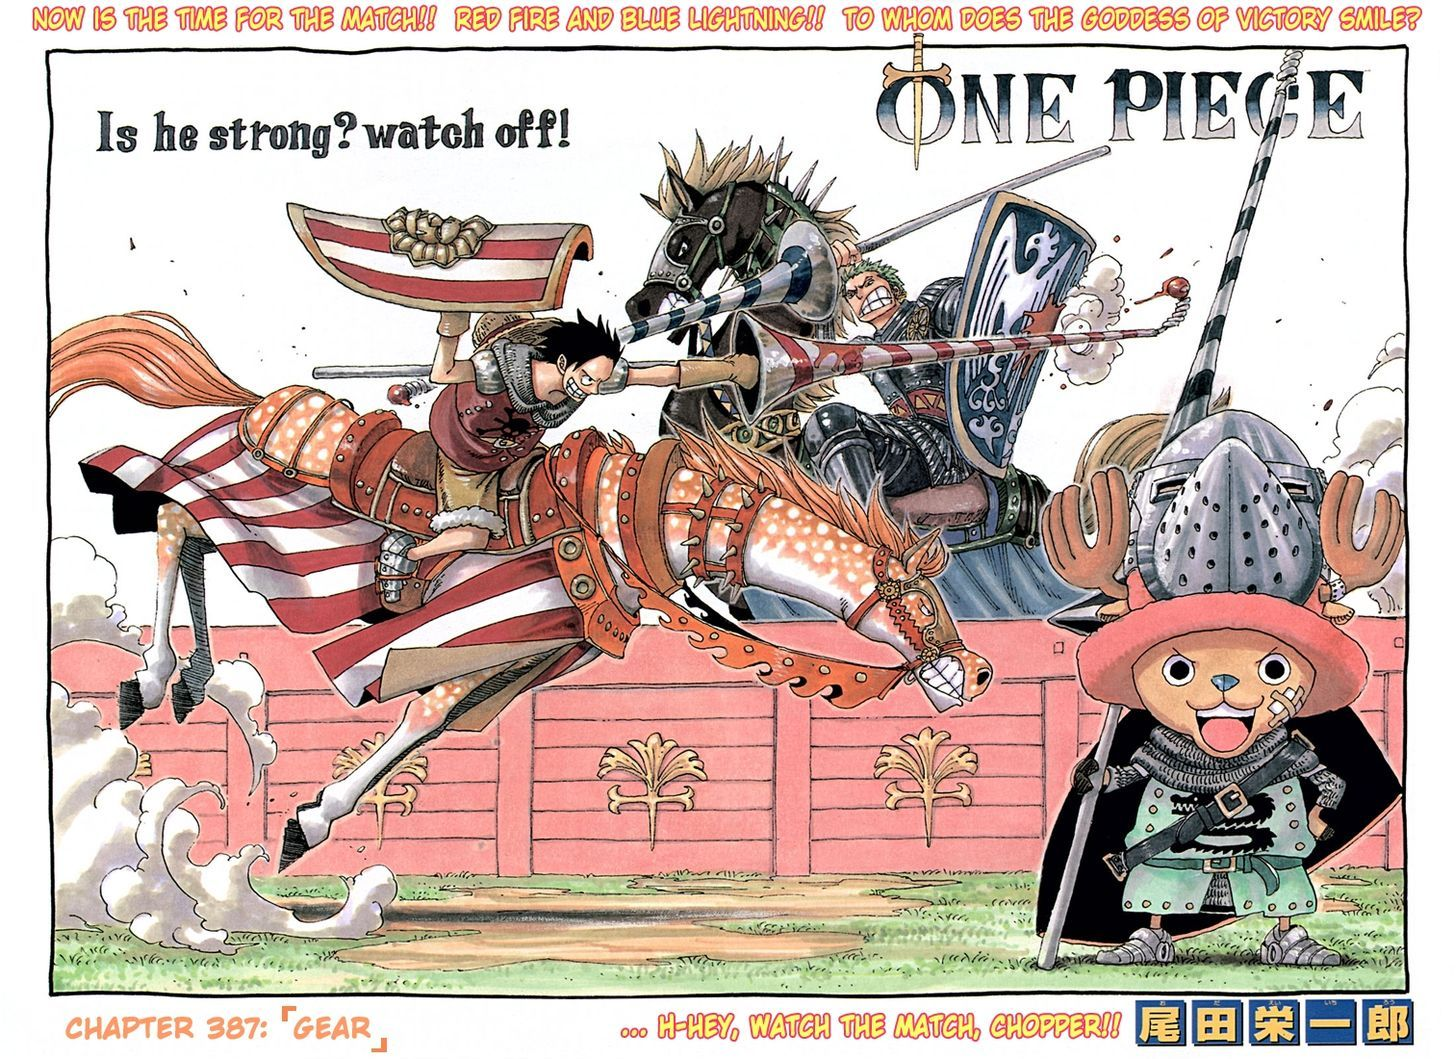 https://im.nineanime.com/comics/pic9/32/96/2735/OnePiece3870996.jpg Page 1